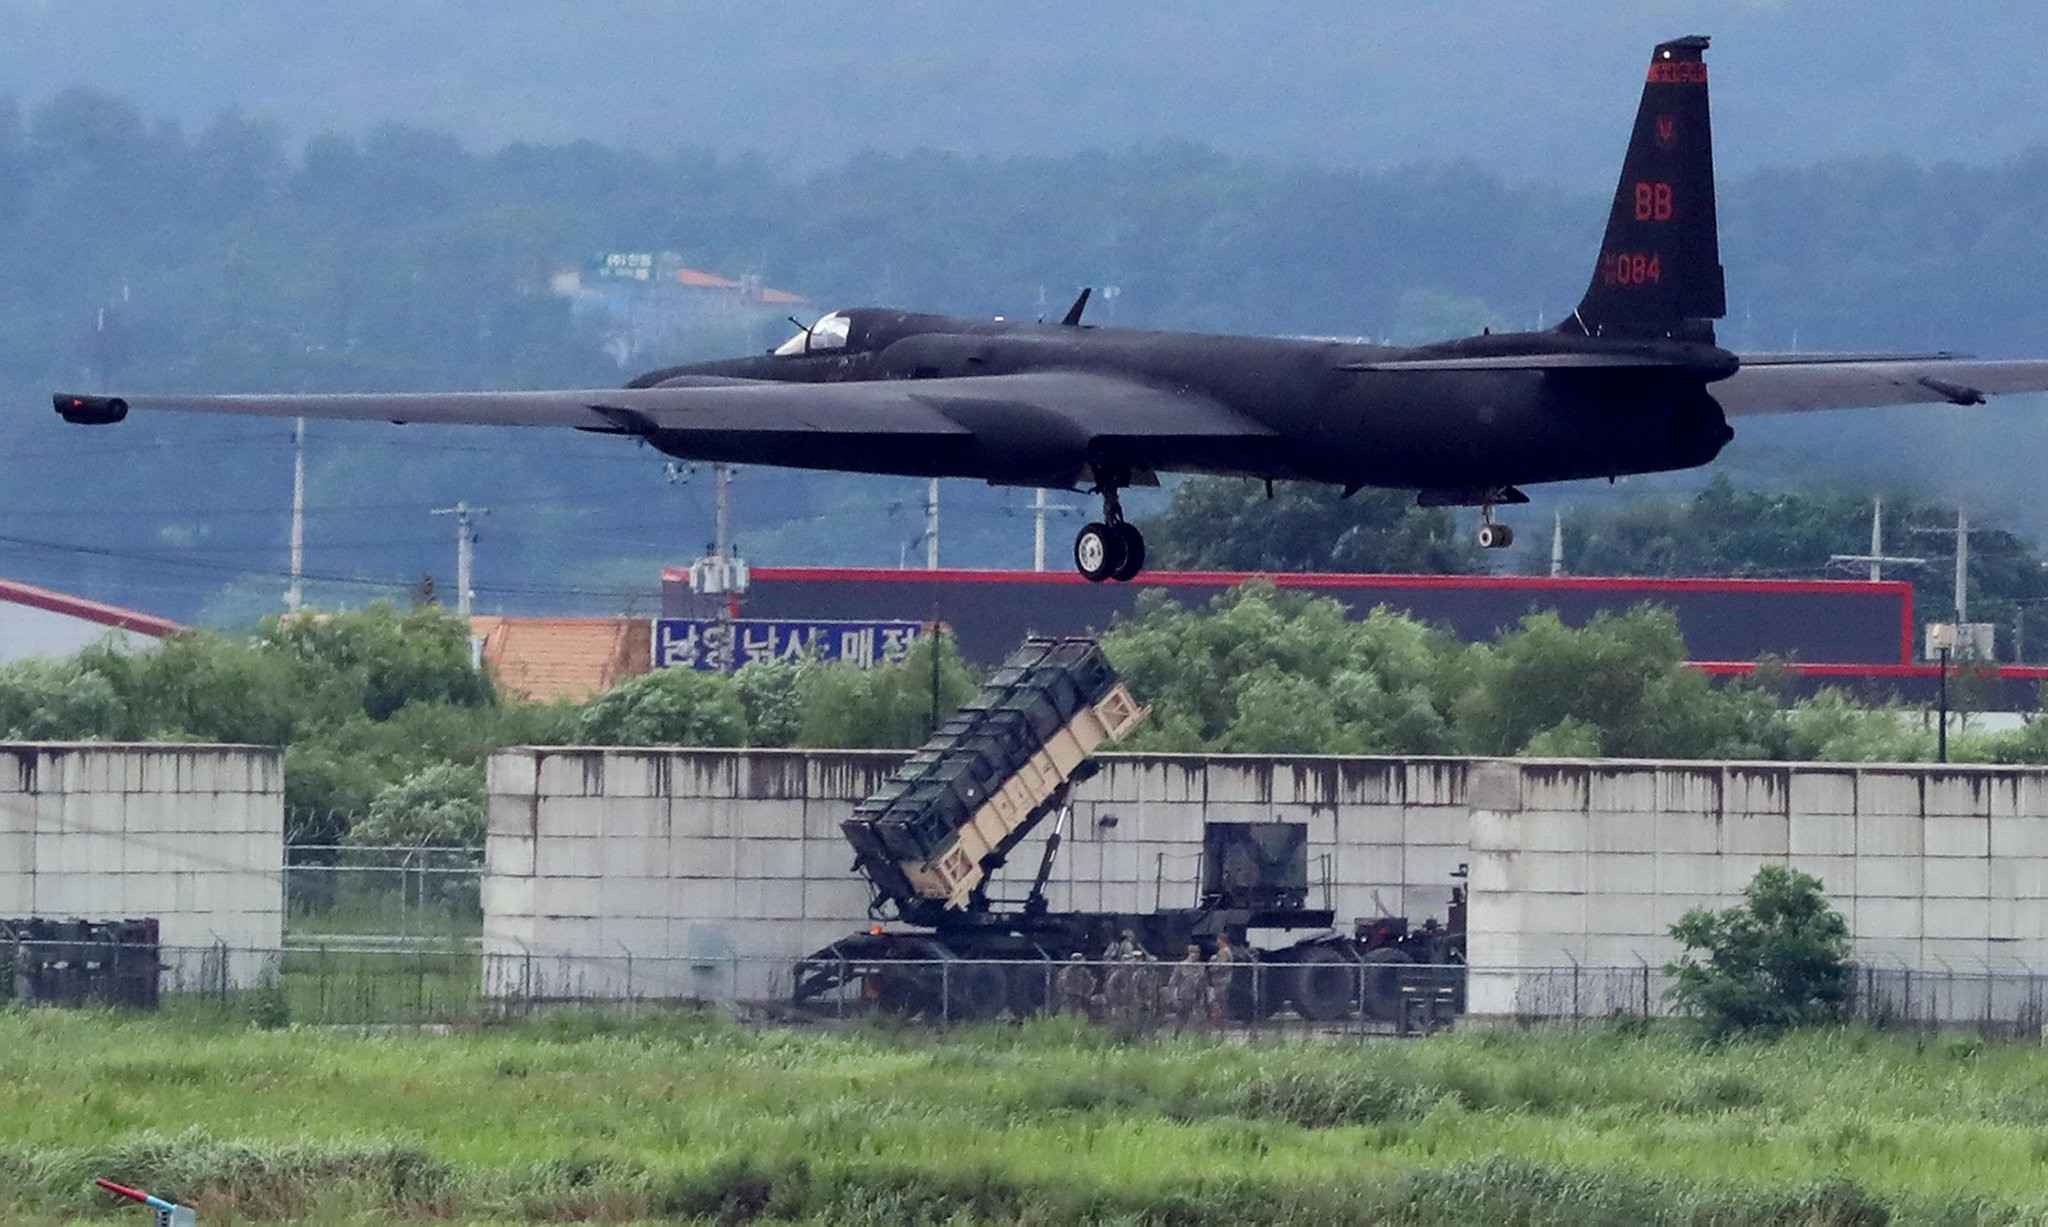 A U.S. Air Force U-2 Dragon Lady takes part in a drill at Osan Air Base in Pyeongtaek, South Korea, August 21, 2017. (Reuters Photo)